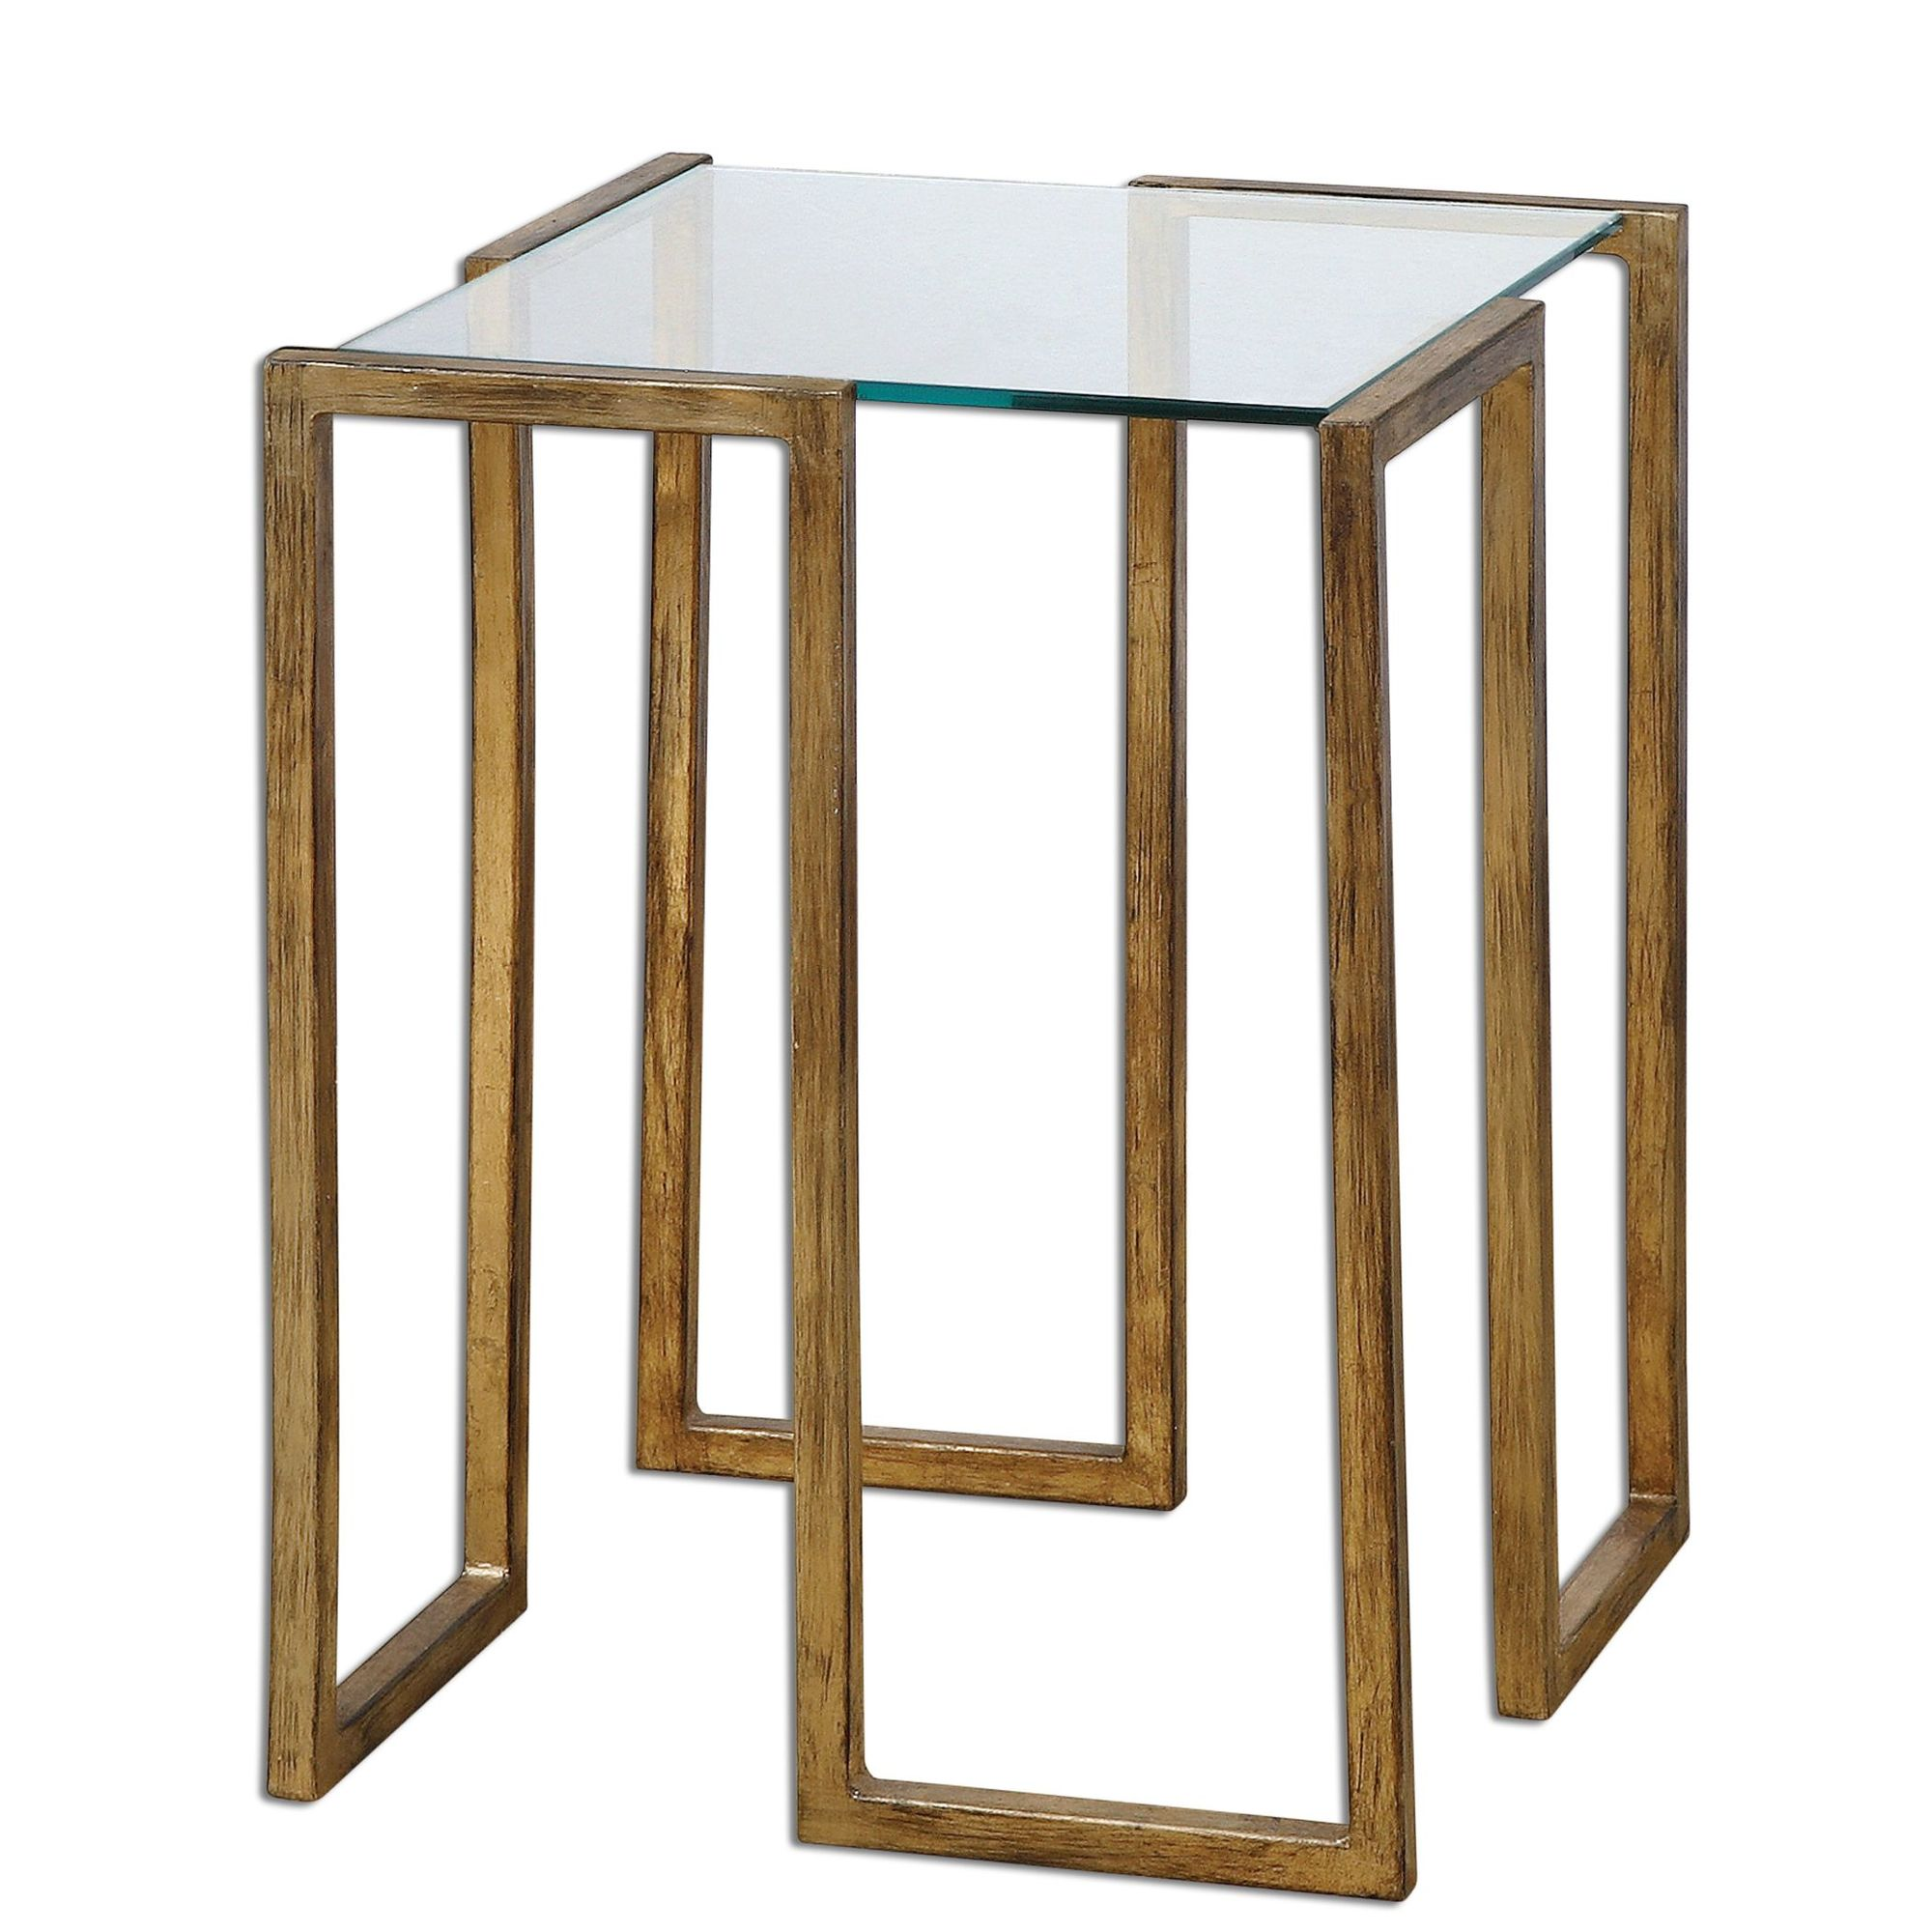 glass top accent table antique gold leaf mathis brothers furniture with solid wood end drawer replica chairs aluminium threshold strip round sofa porch side hardwood floor tile